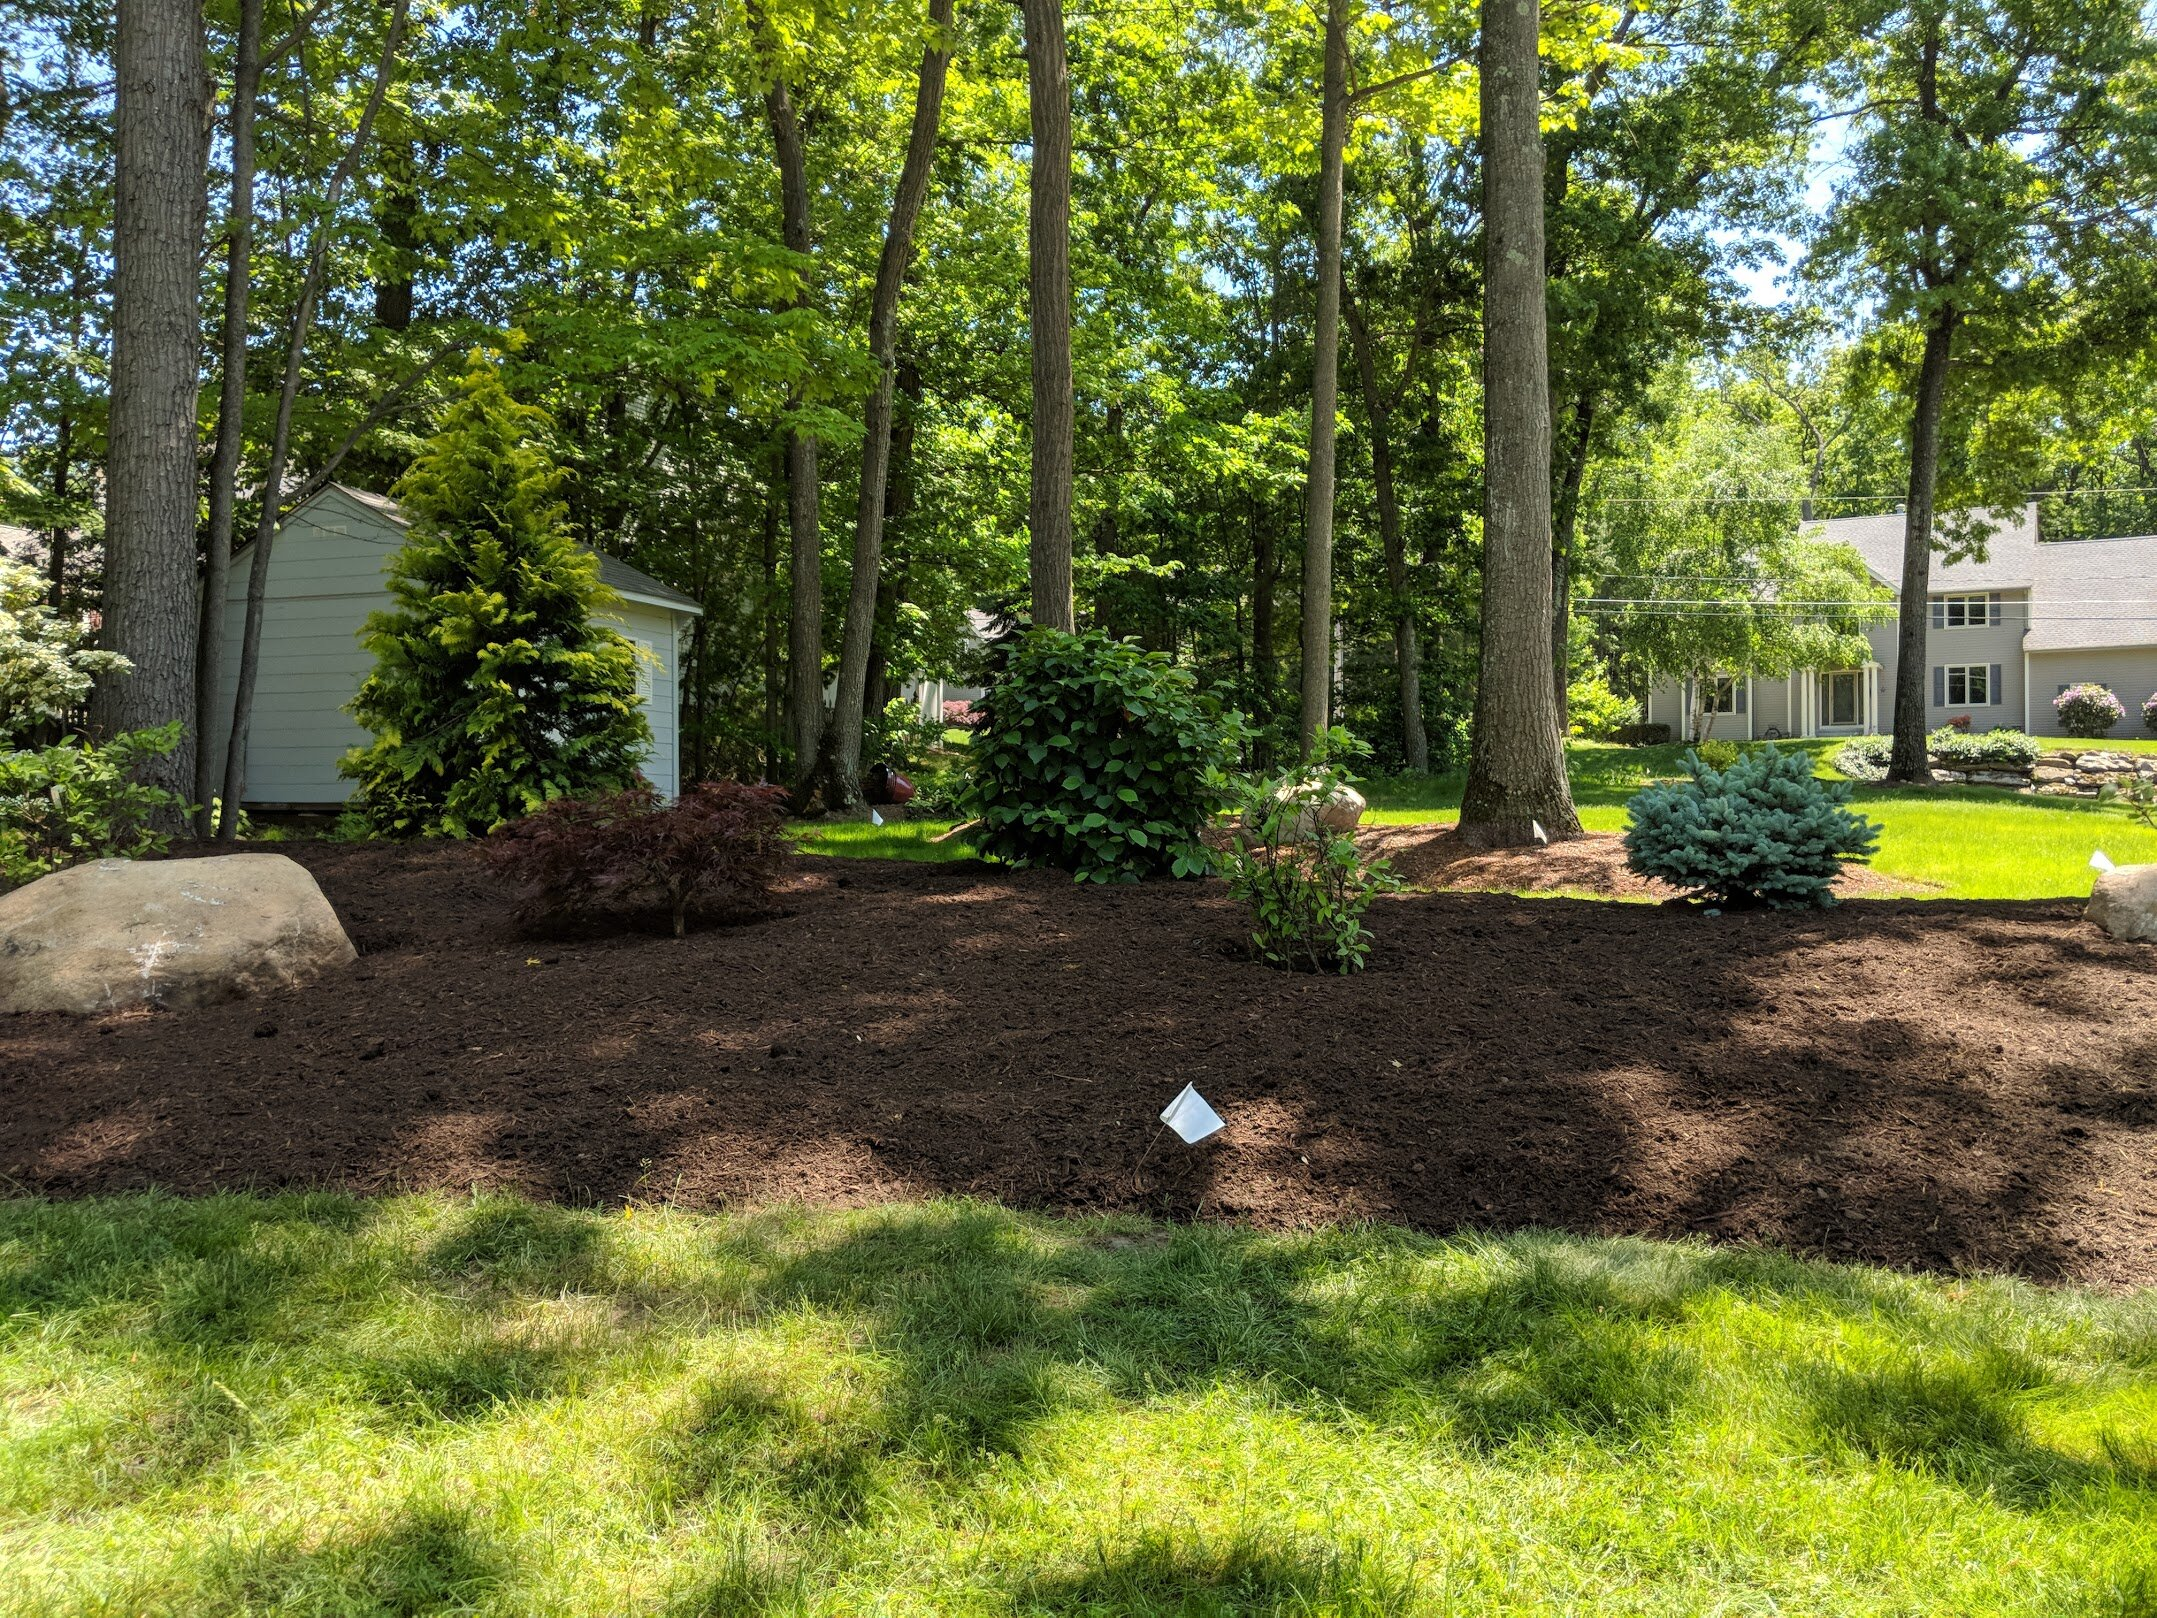 Nutri-mulch is down and everything looks neat and crisp.